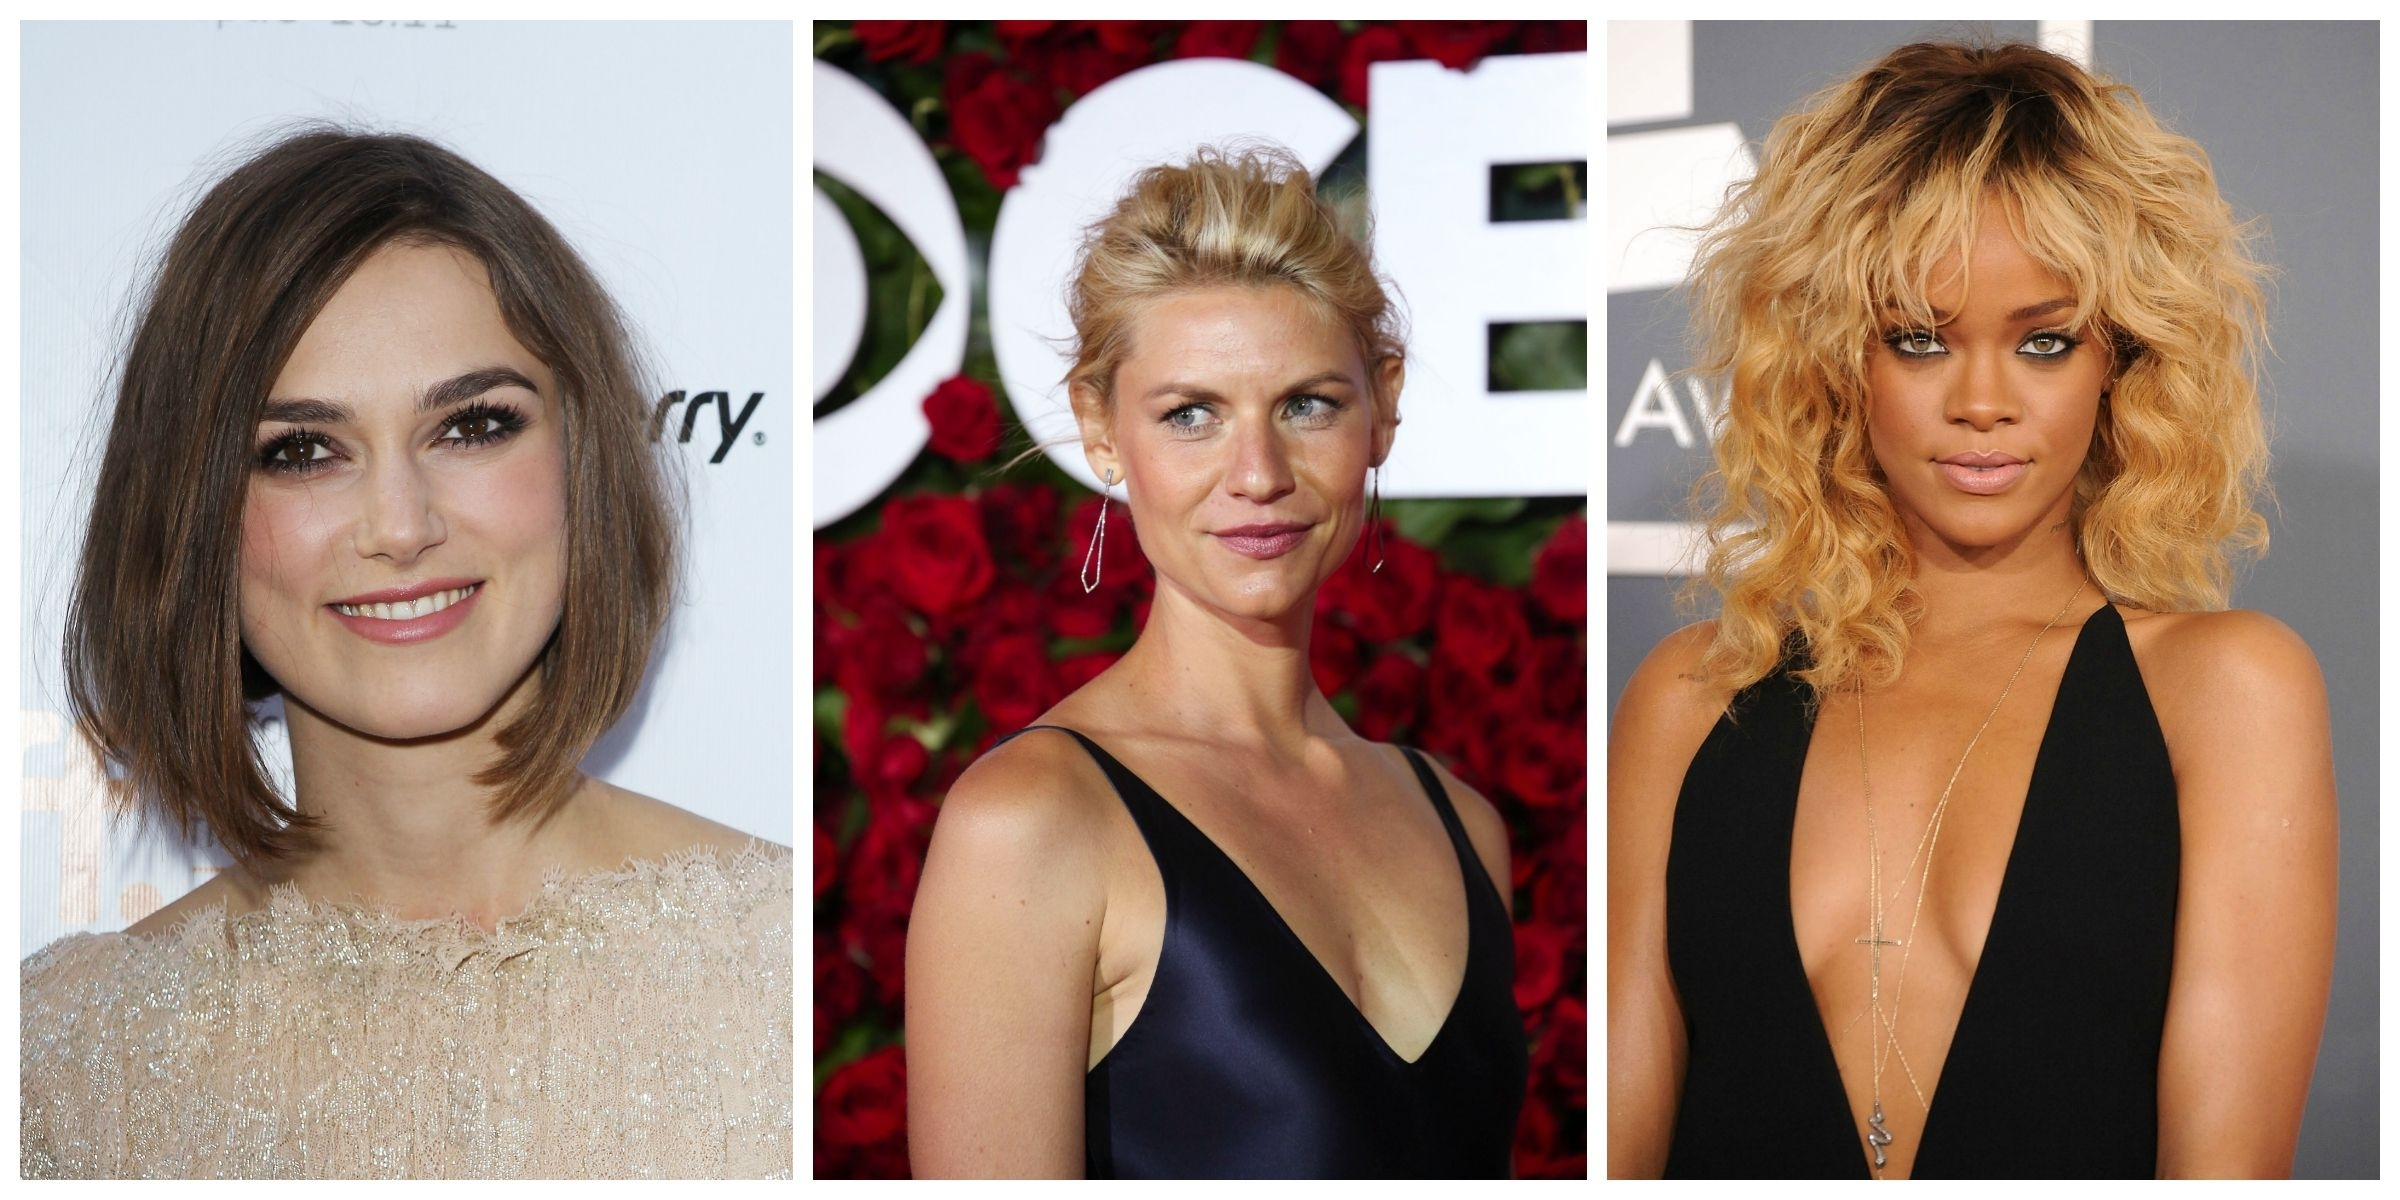 The 13 Best Hairstyles For Square Faces intended for Haircut For Square Face And Big Nose